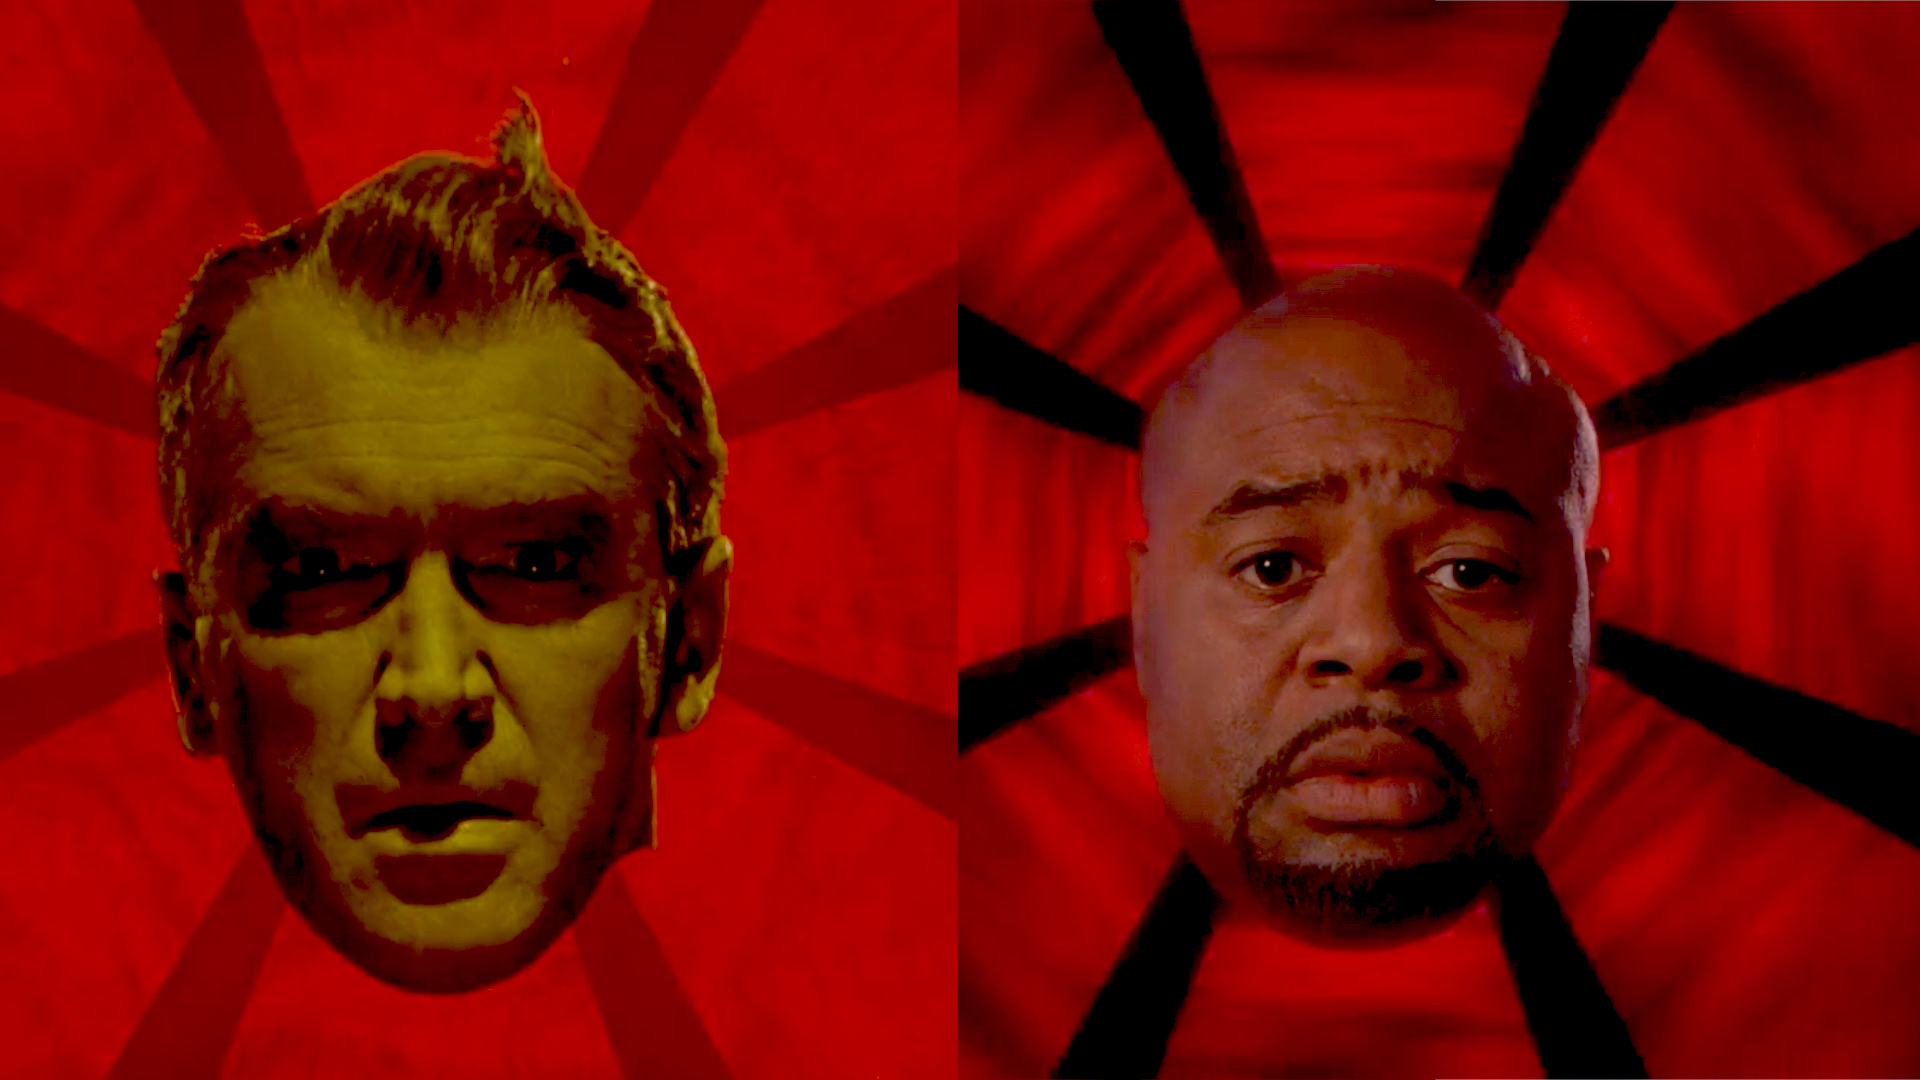 The famous dream sequence from Vertigo referenced in Pushing Daisies.